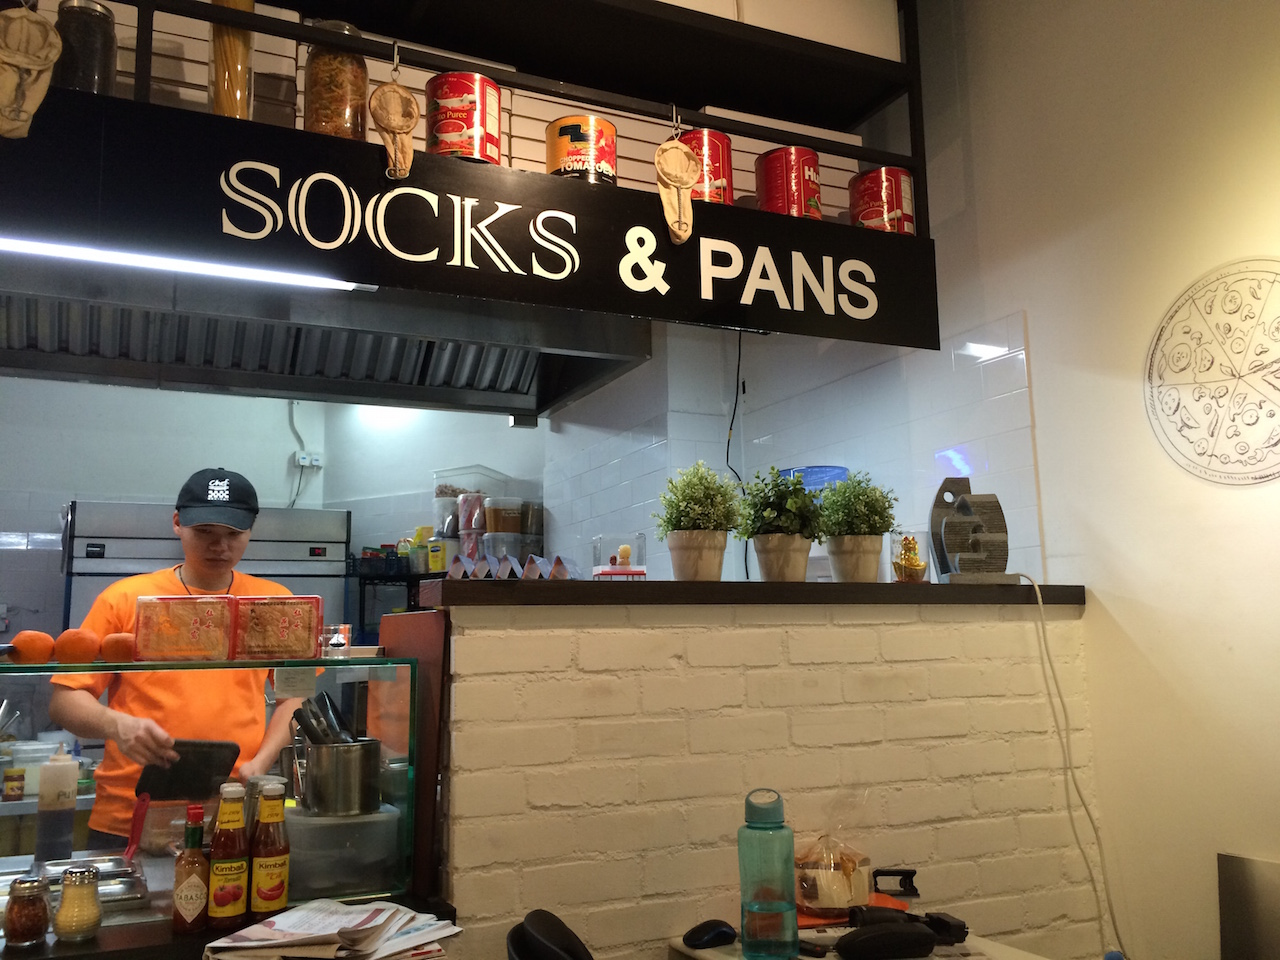 Socks and Pans at 50 Market Street